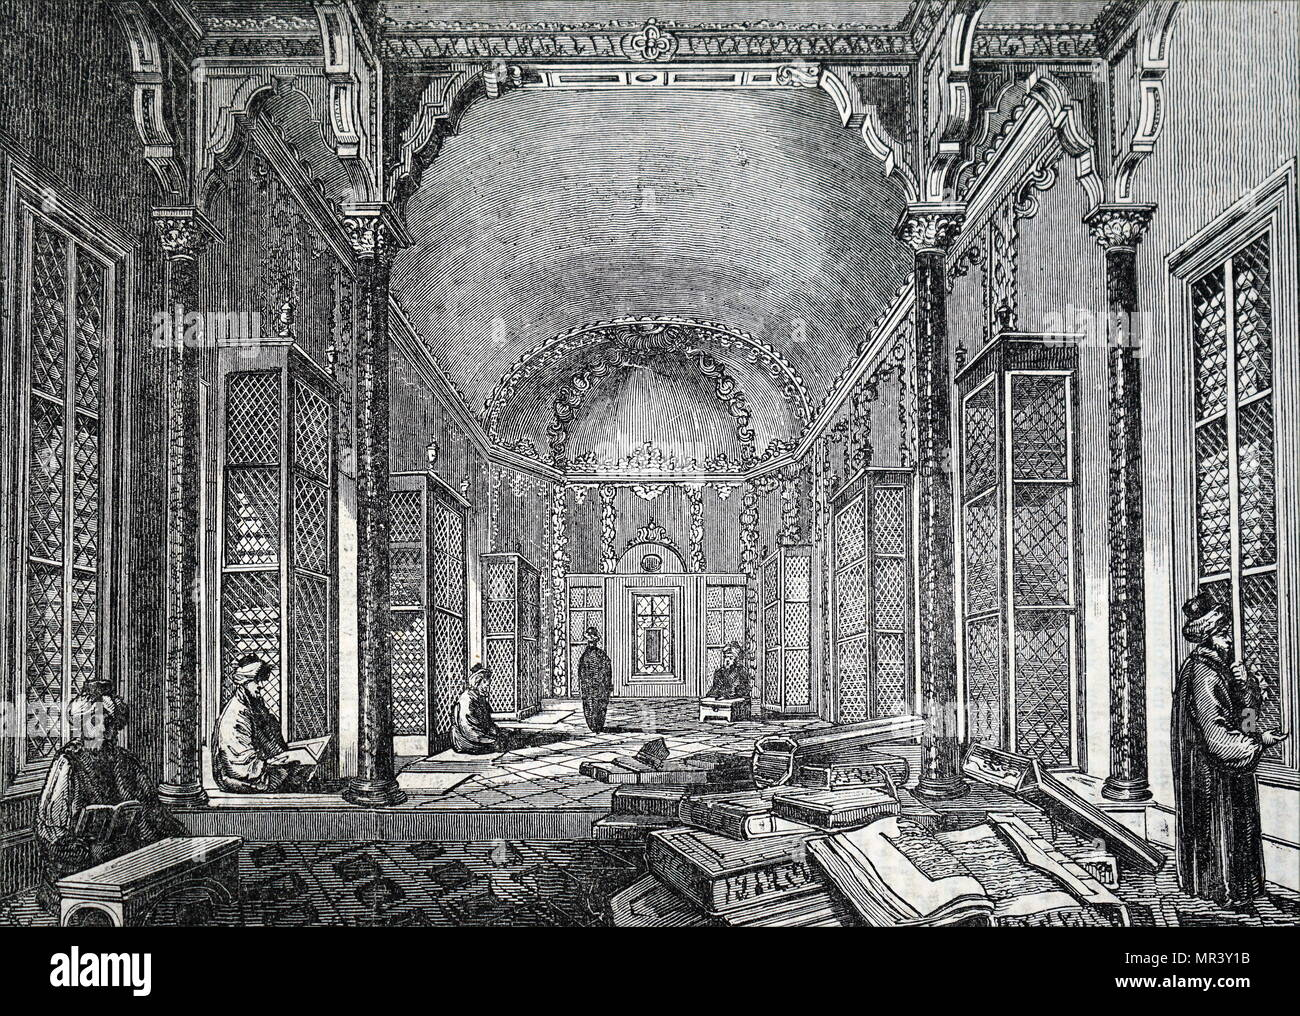 Illustration depicting the public library of Constantinople. Constantinople was the capital city of the Roman/Byzantine and later Ottoman empire, in modern-day Turkey. Dated 19th century - Stock Image